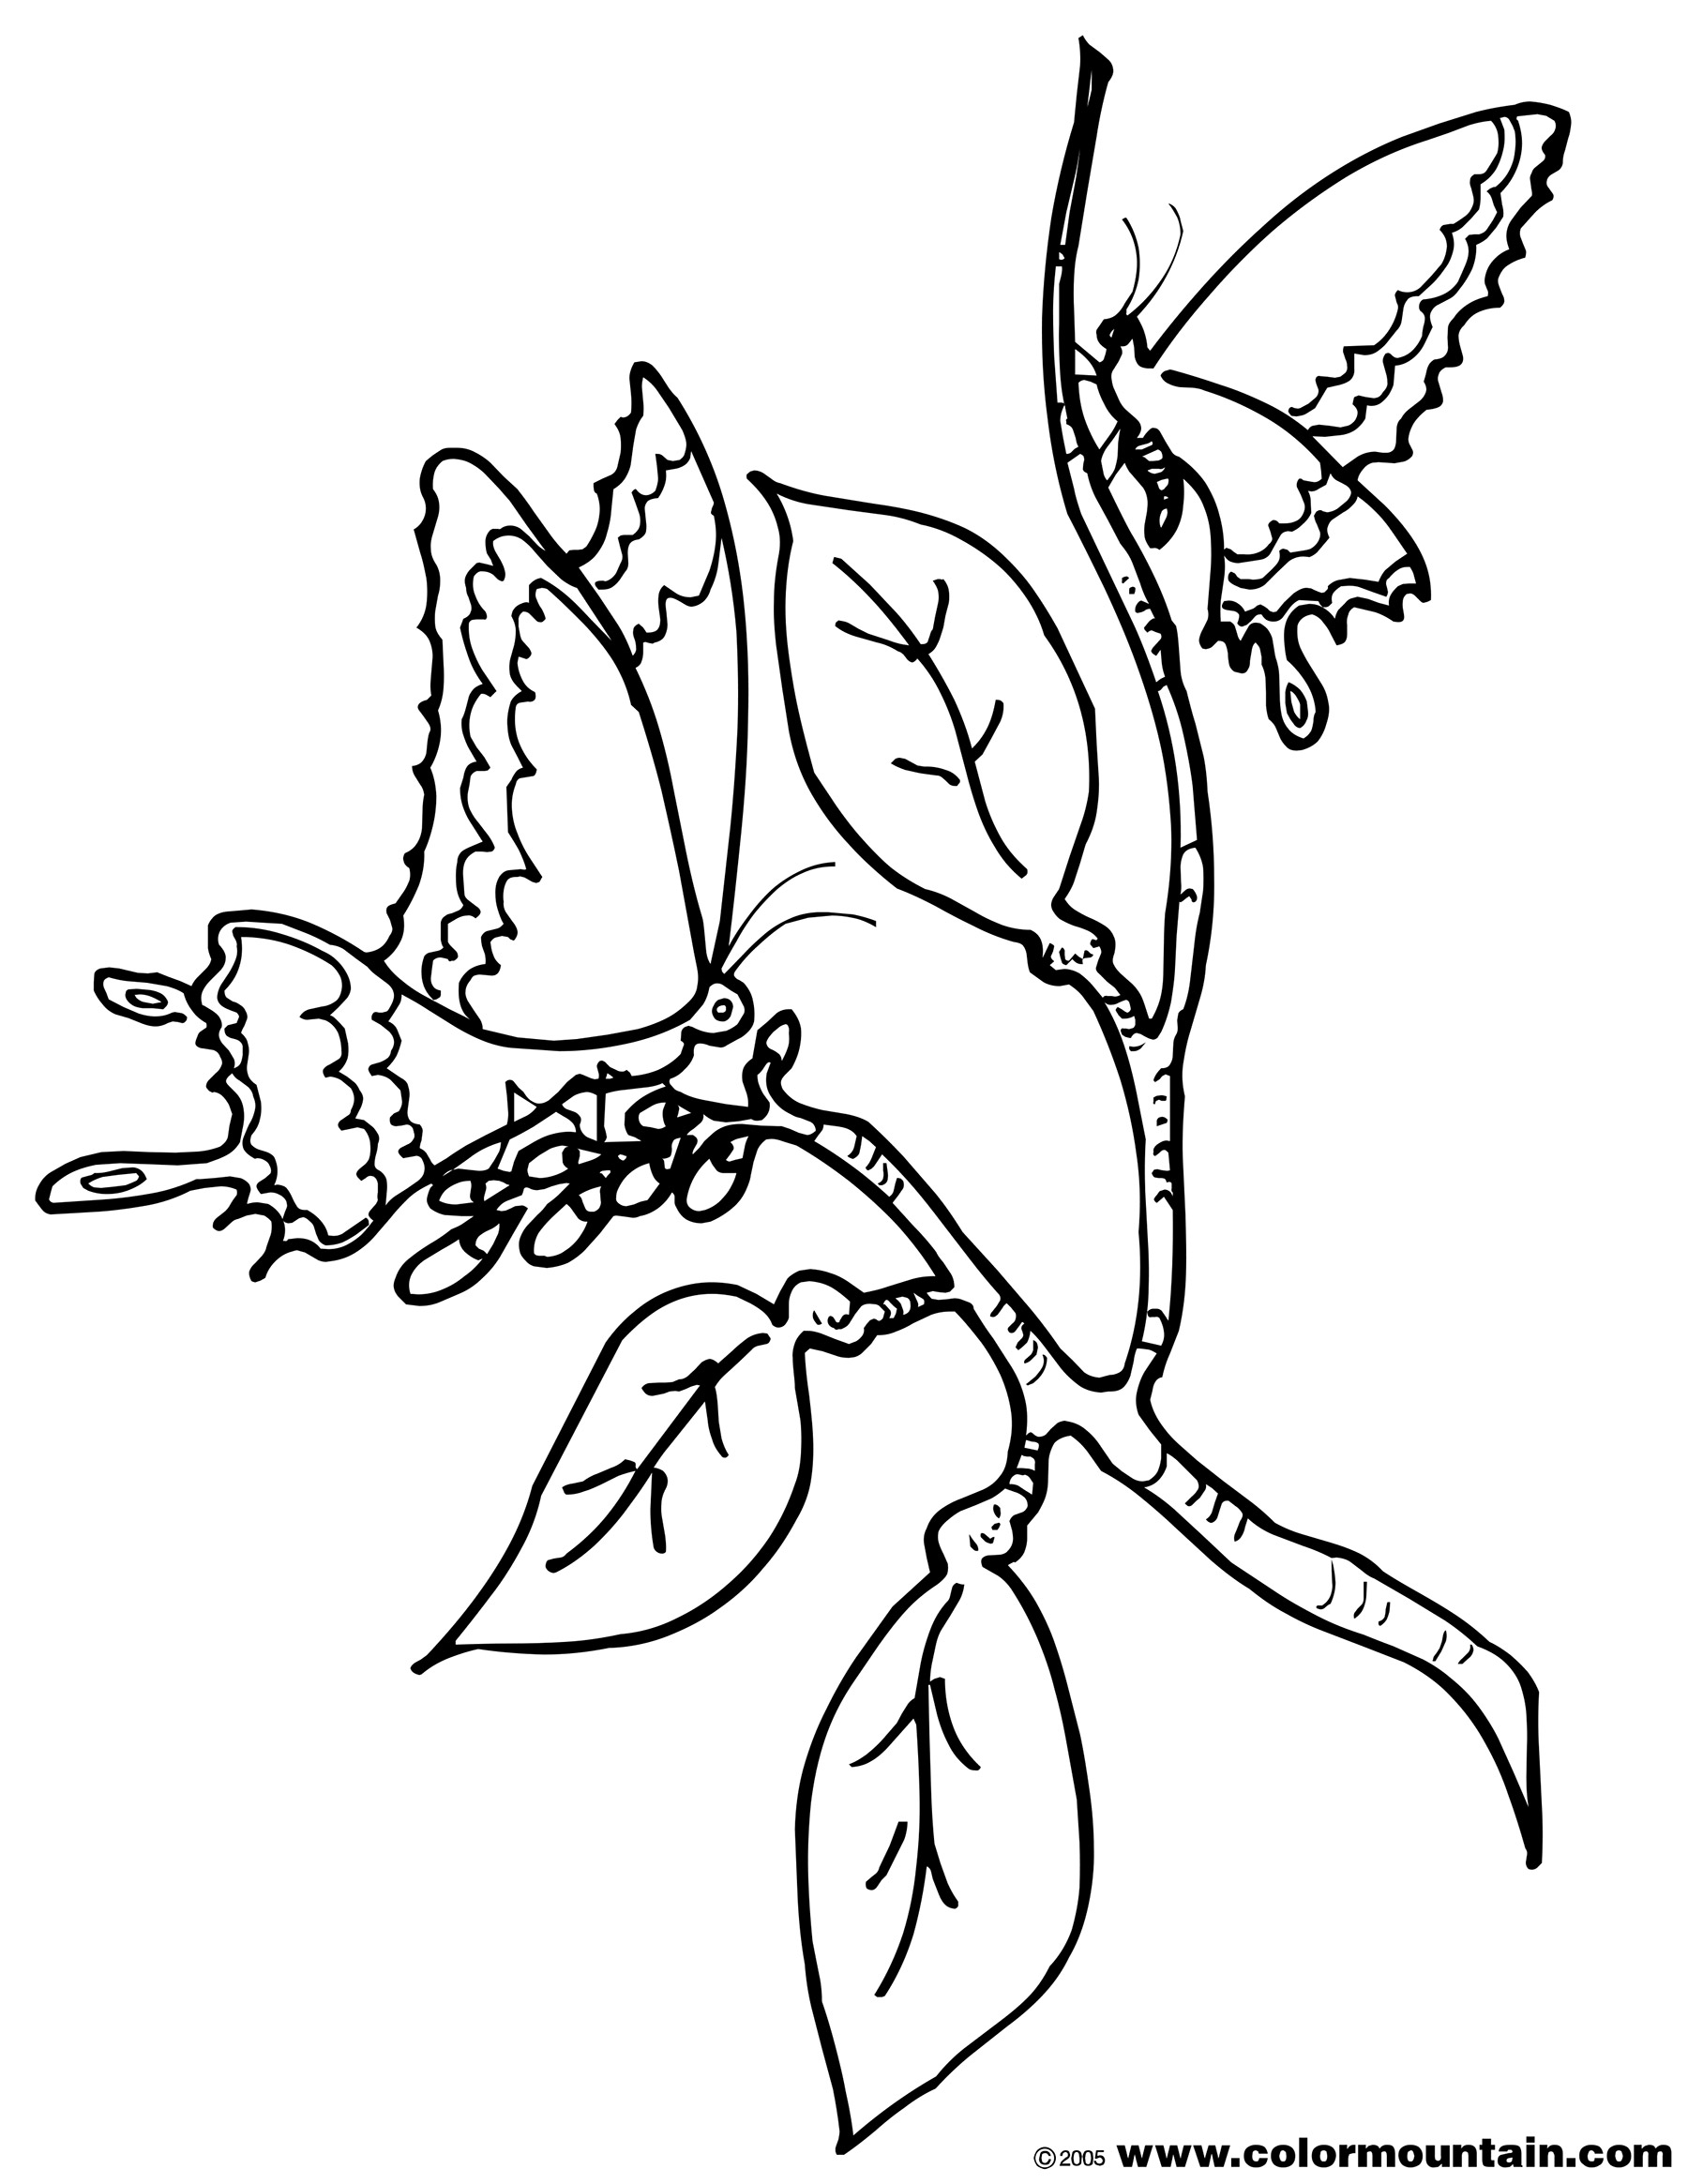 butterfly chrysalis coloring pages - photo#19